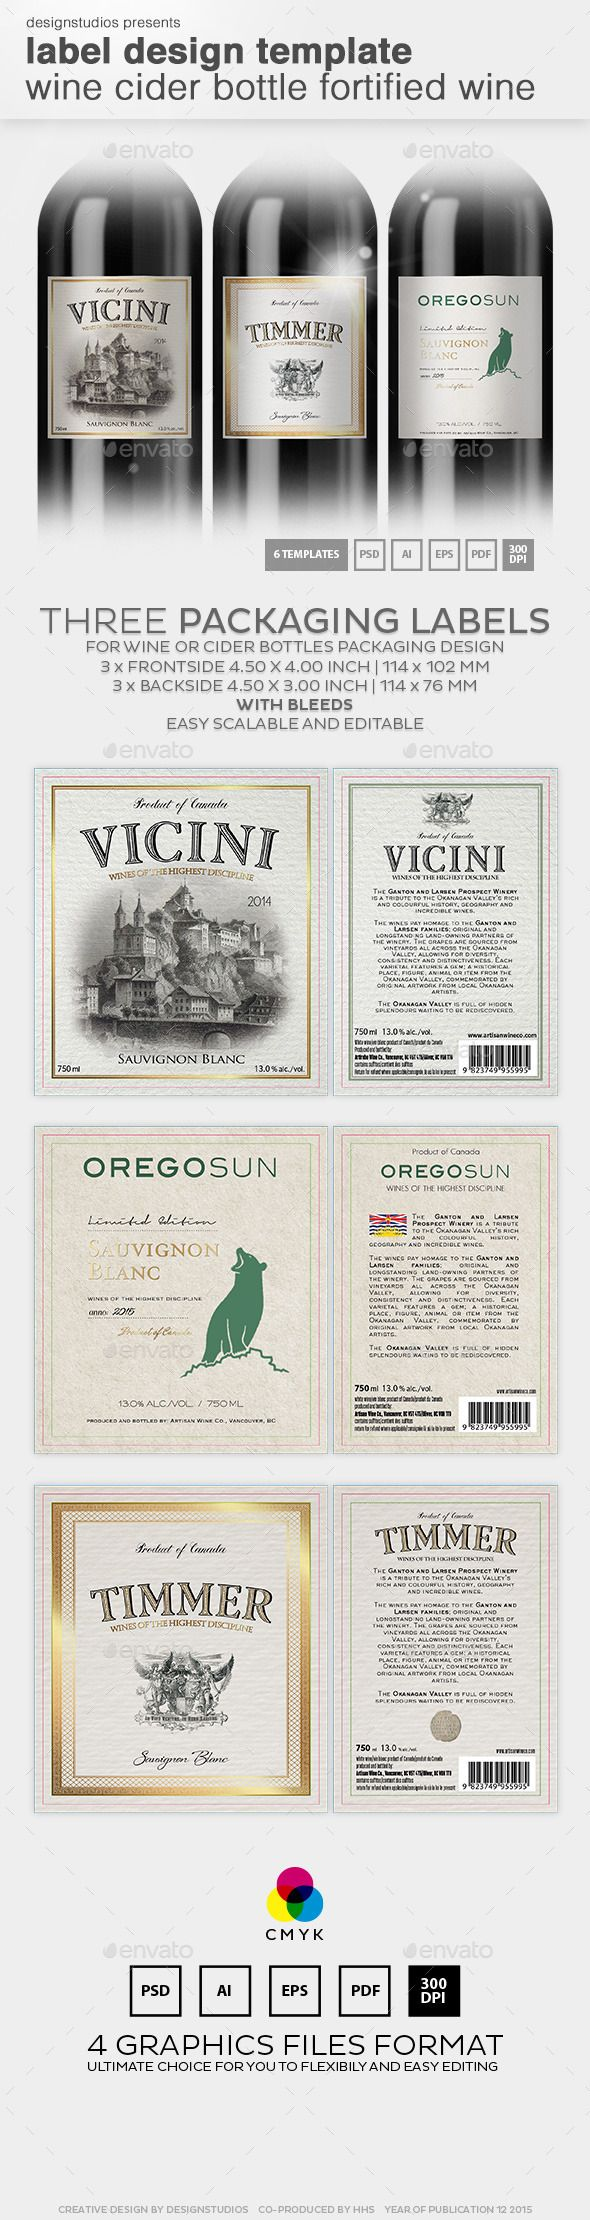 Label Design Template Wine & Cider Bottle | Template, Print ...